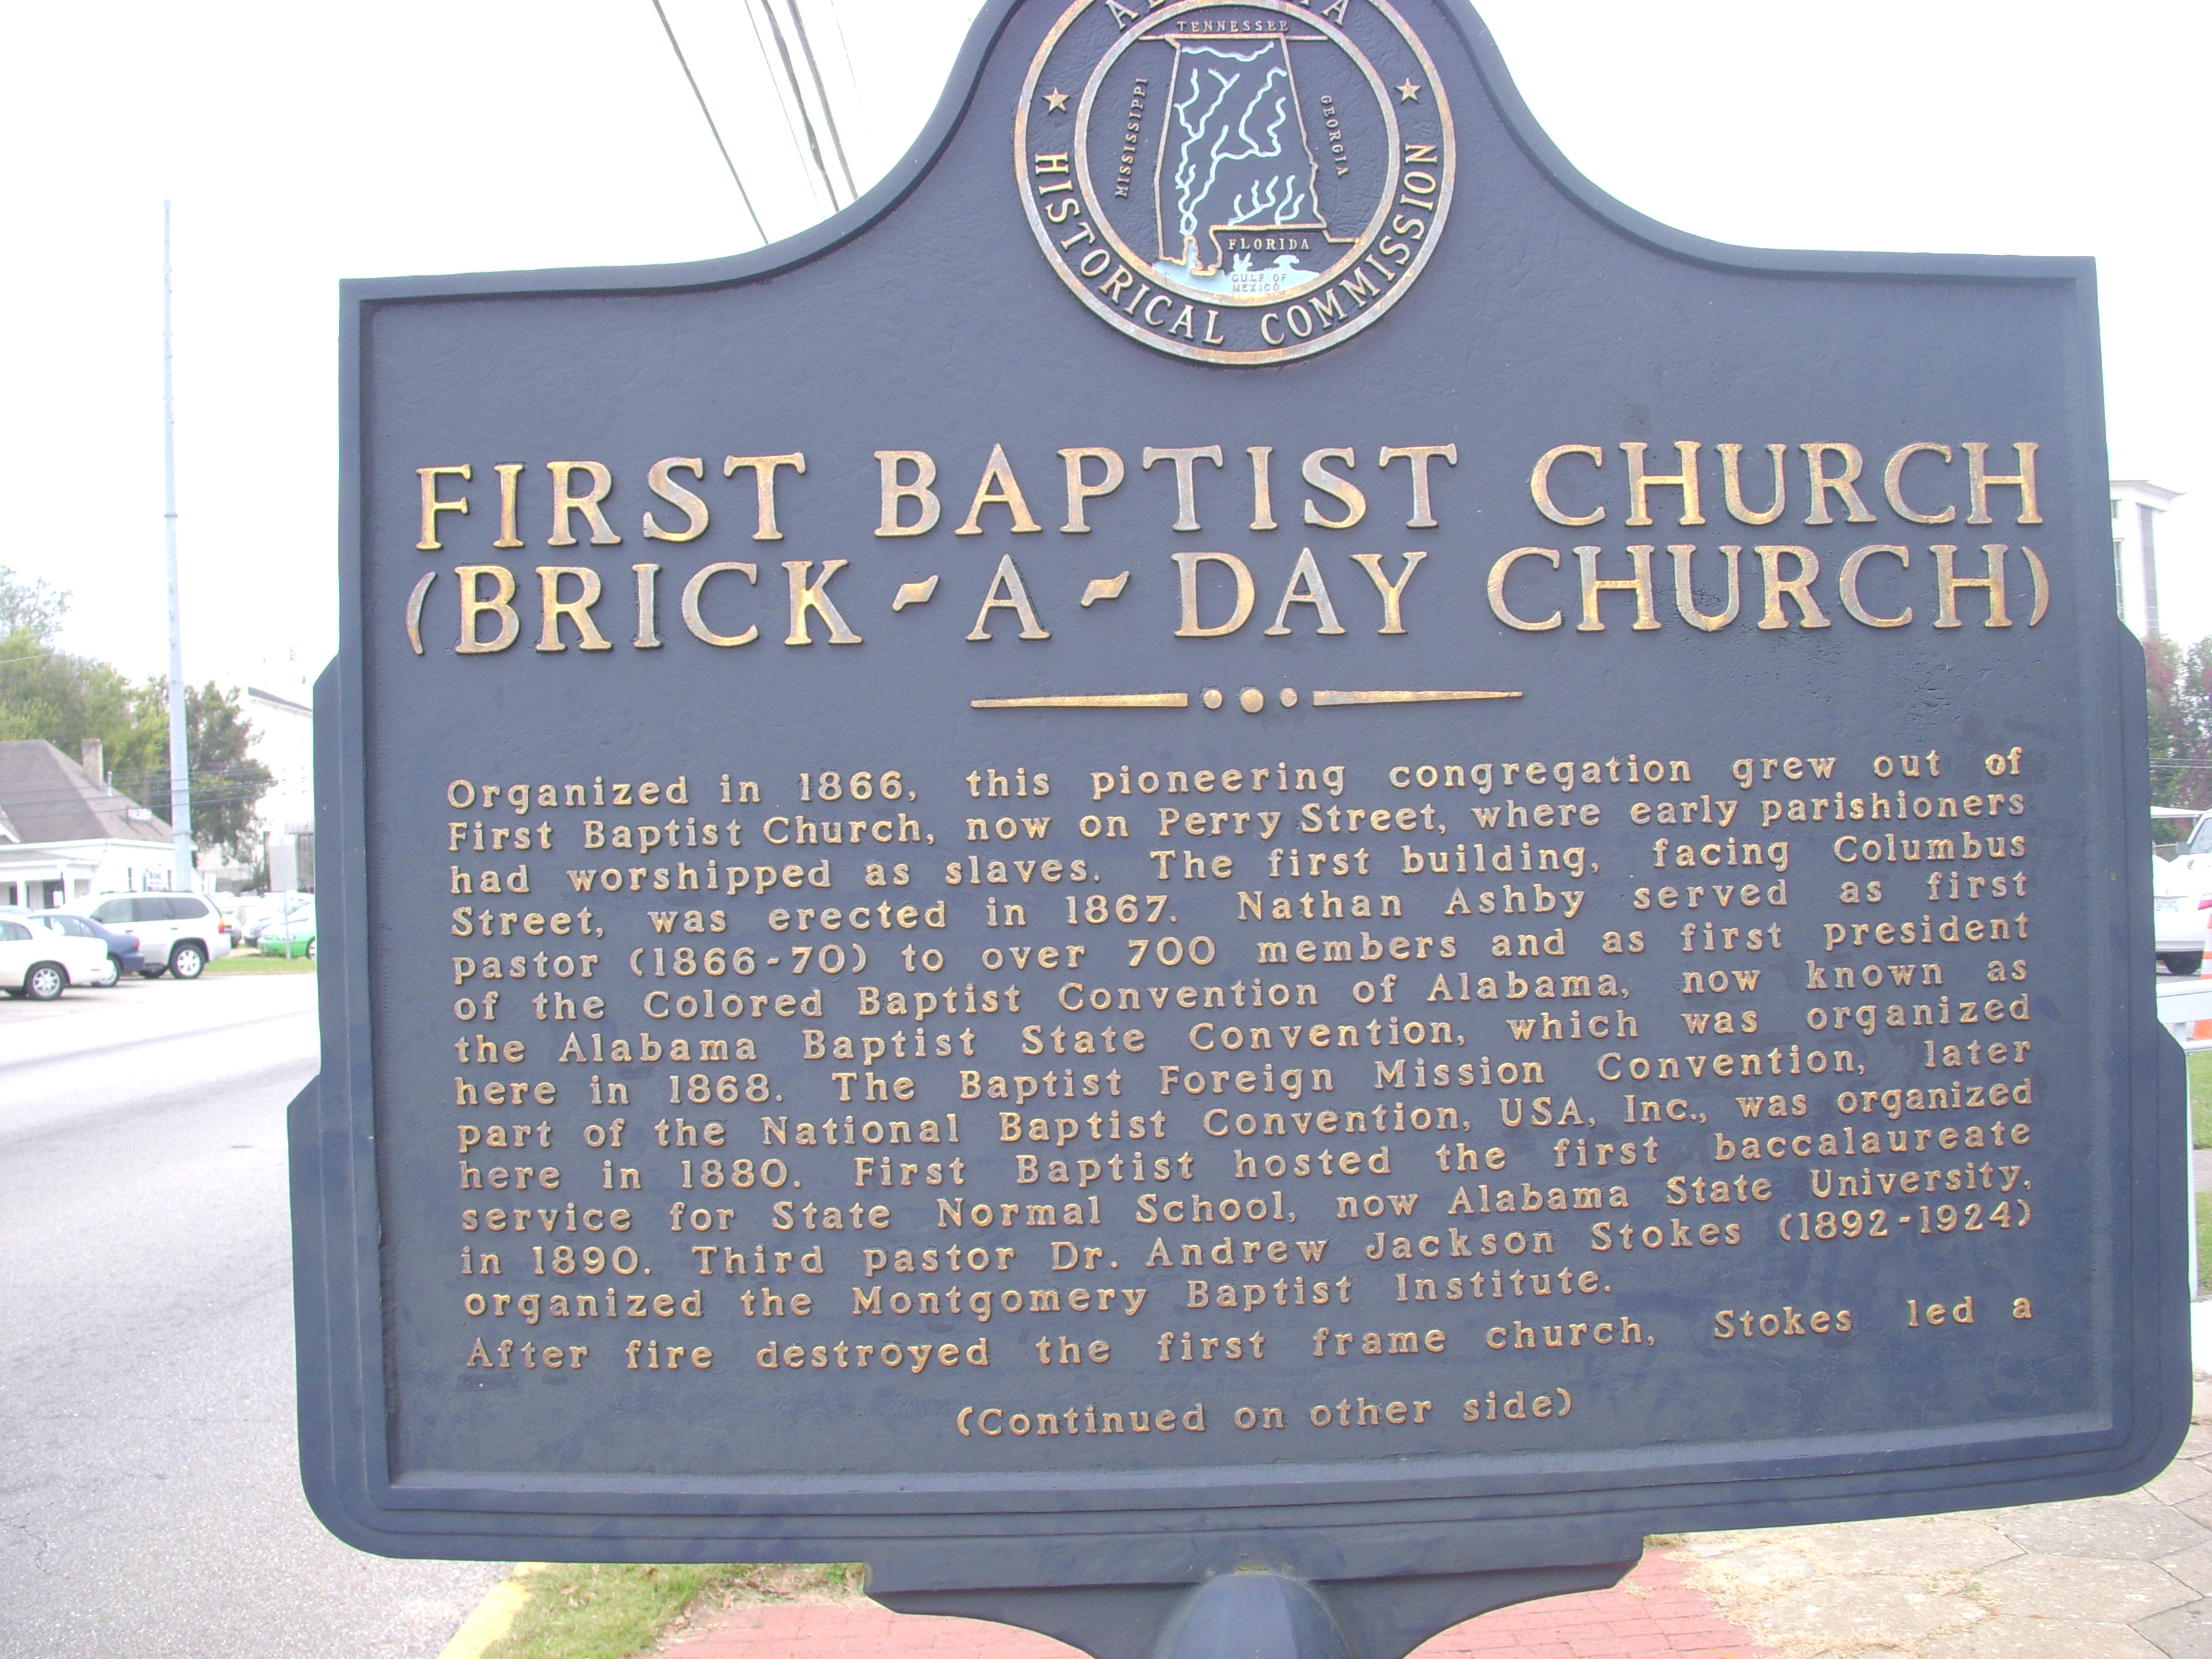 Members of the SCLC and SNCC used First Baptist Church and the Brown Chapel AME Church to plan the Selma to Montgomery marches.